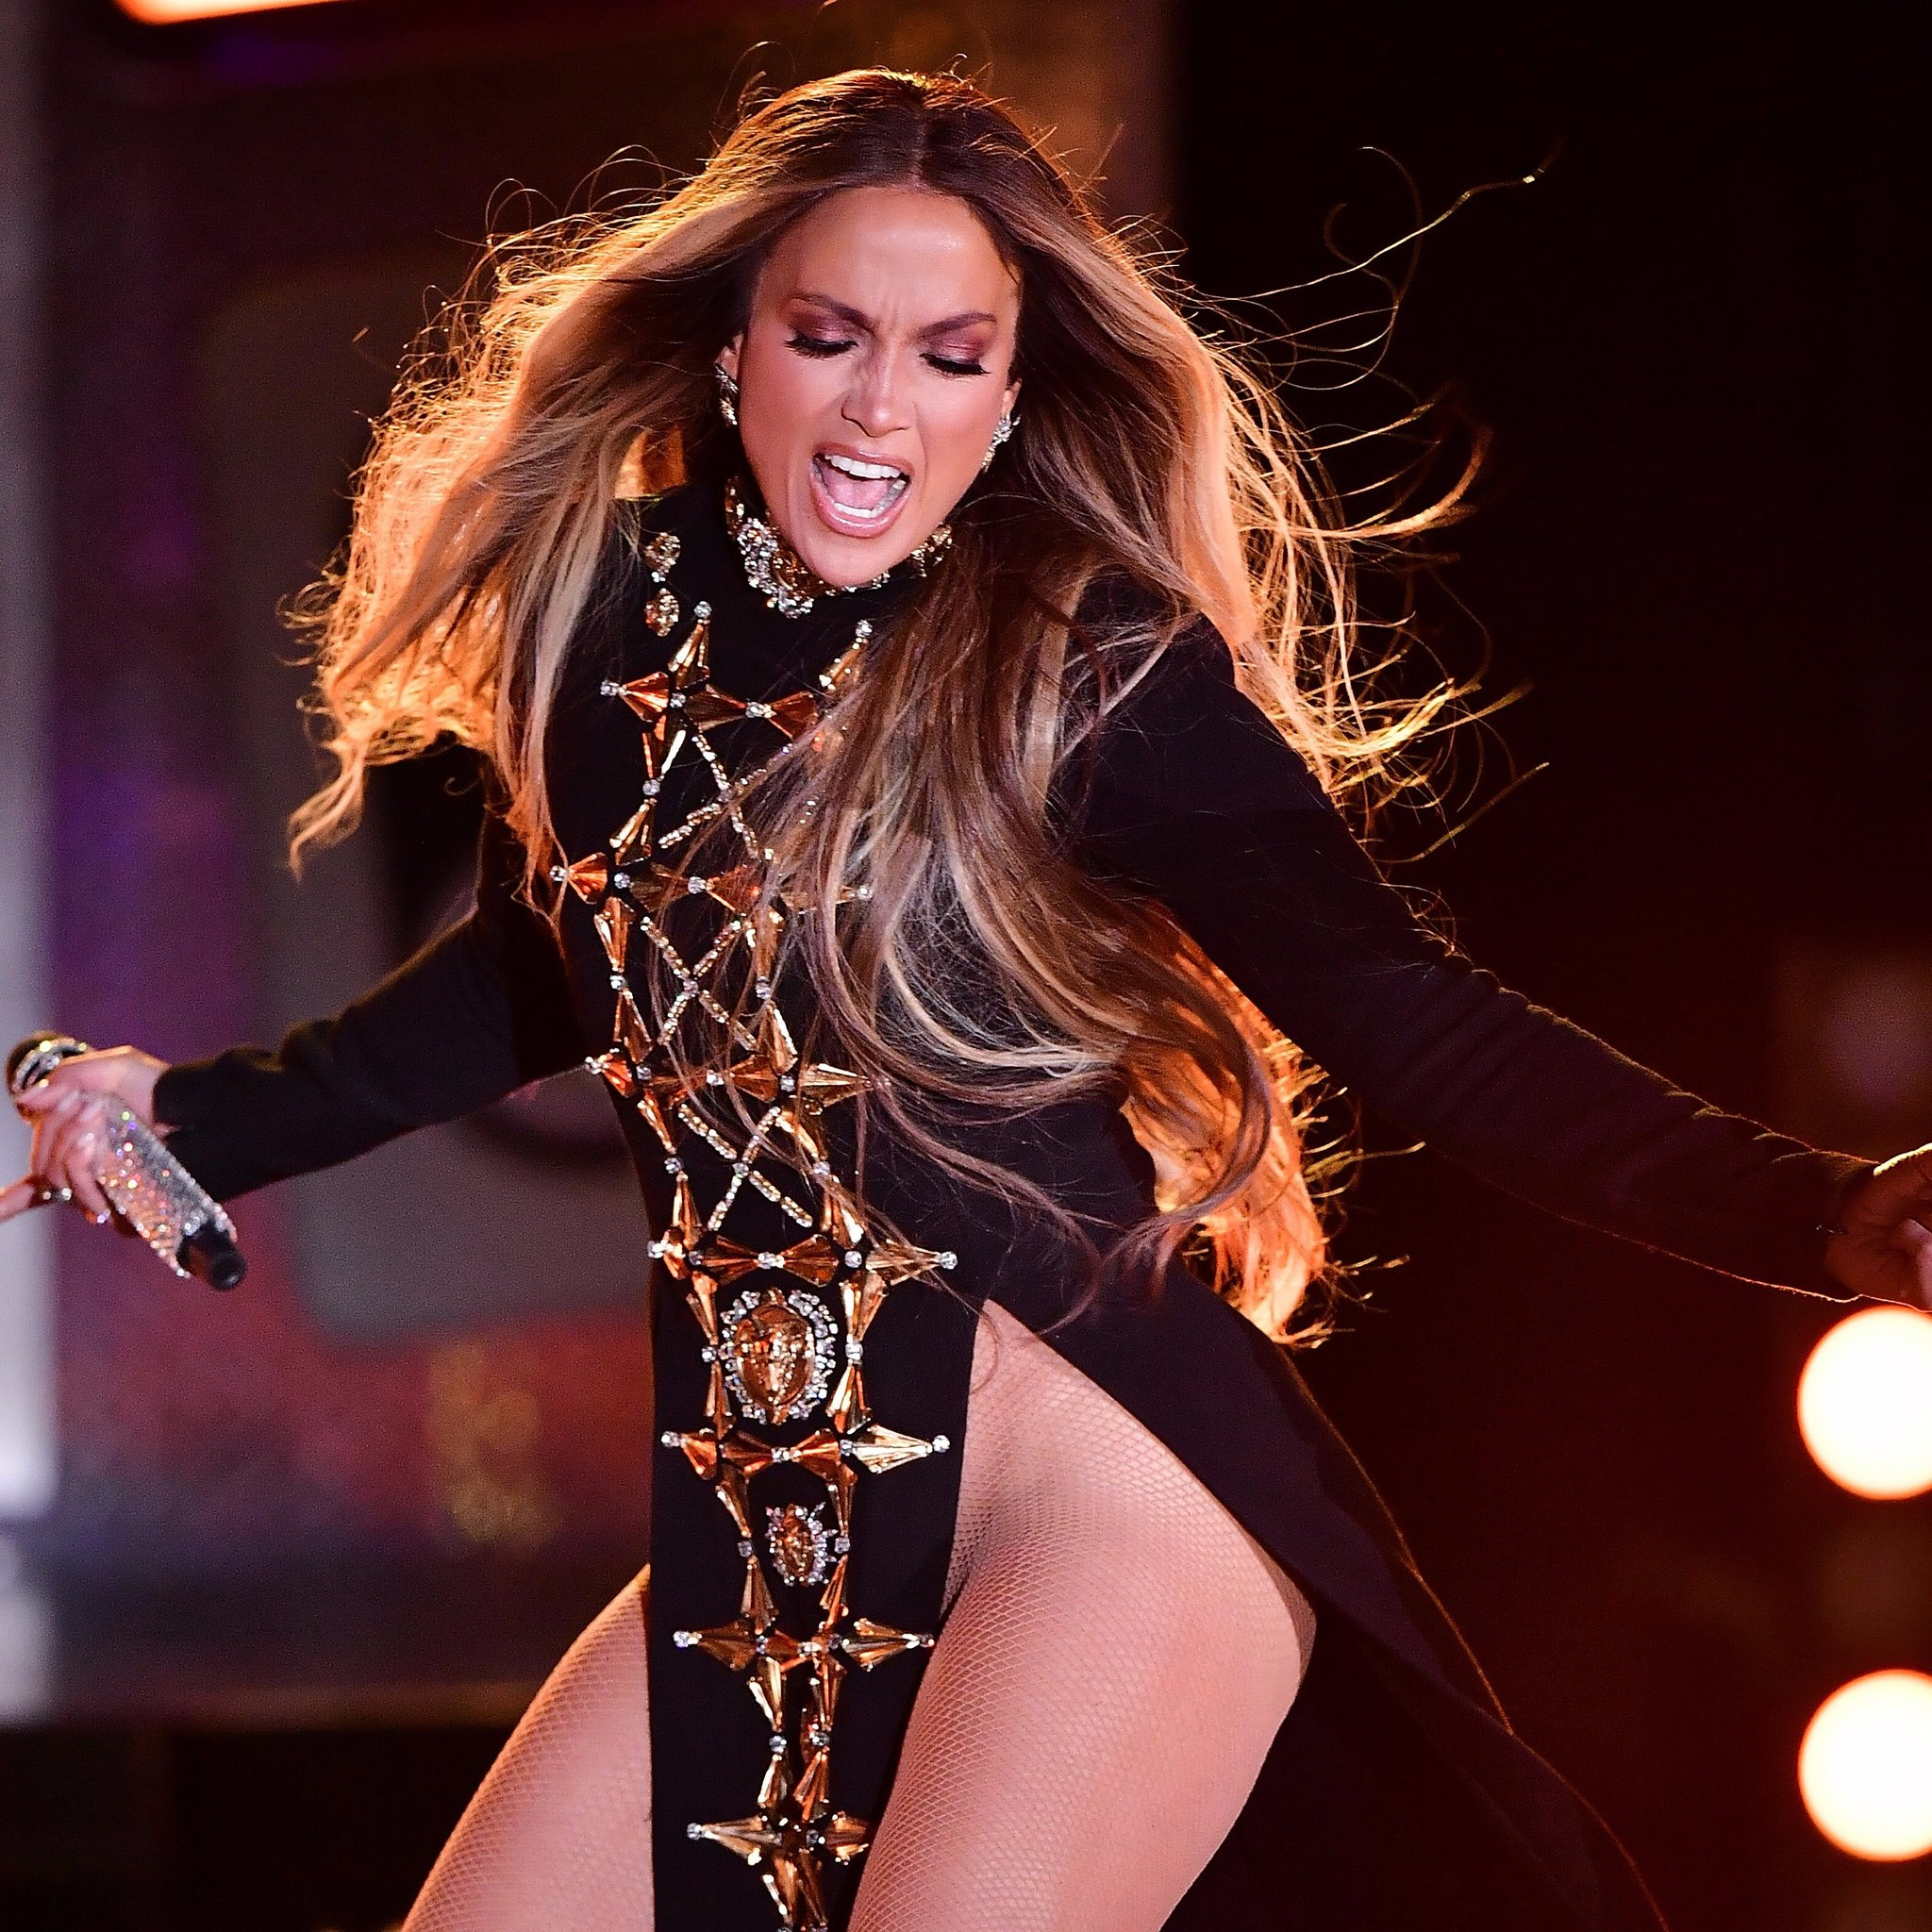 Jennifer-Lopez-Singing-Ni-Tu-Ni-Yo-Video